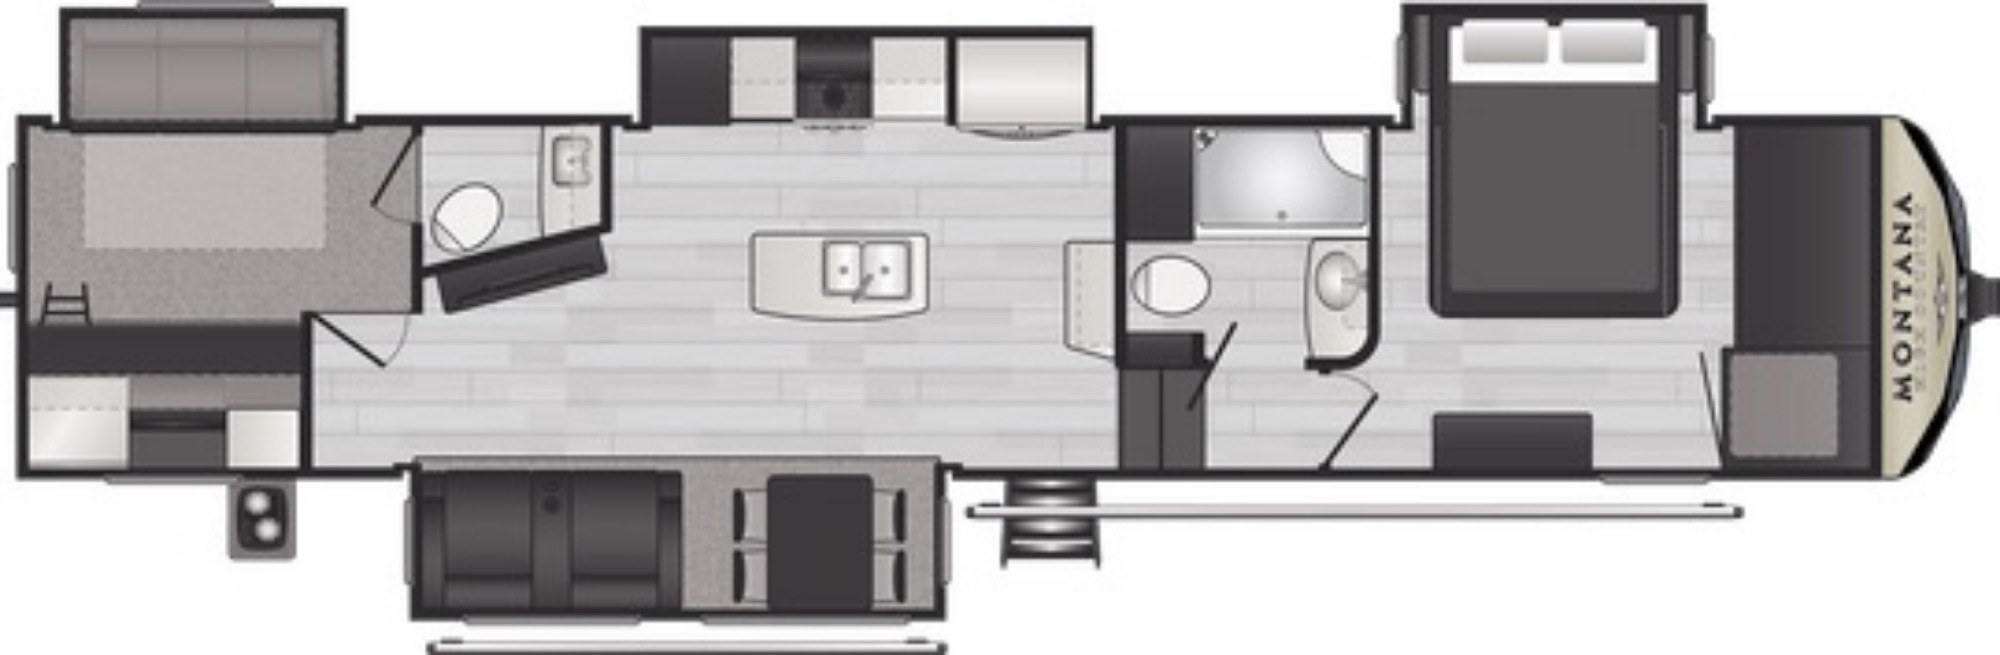 View Floor Plan for 2021 KEYSTONE MONTANA HIGH COUNTRY 365BH